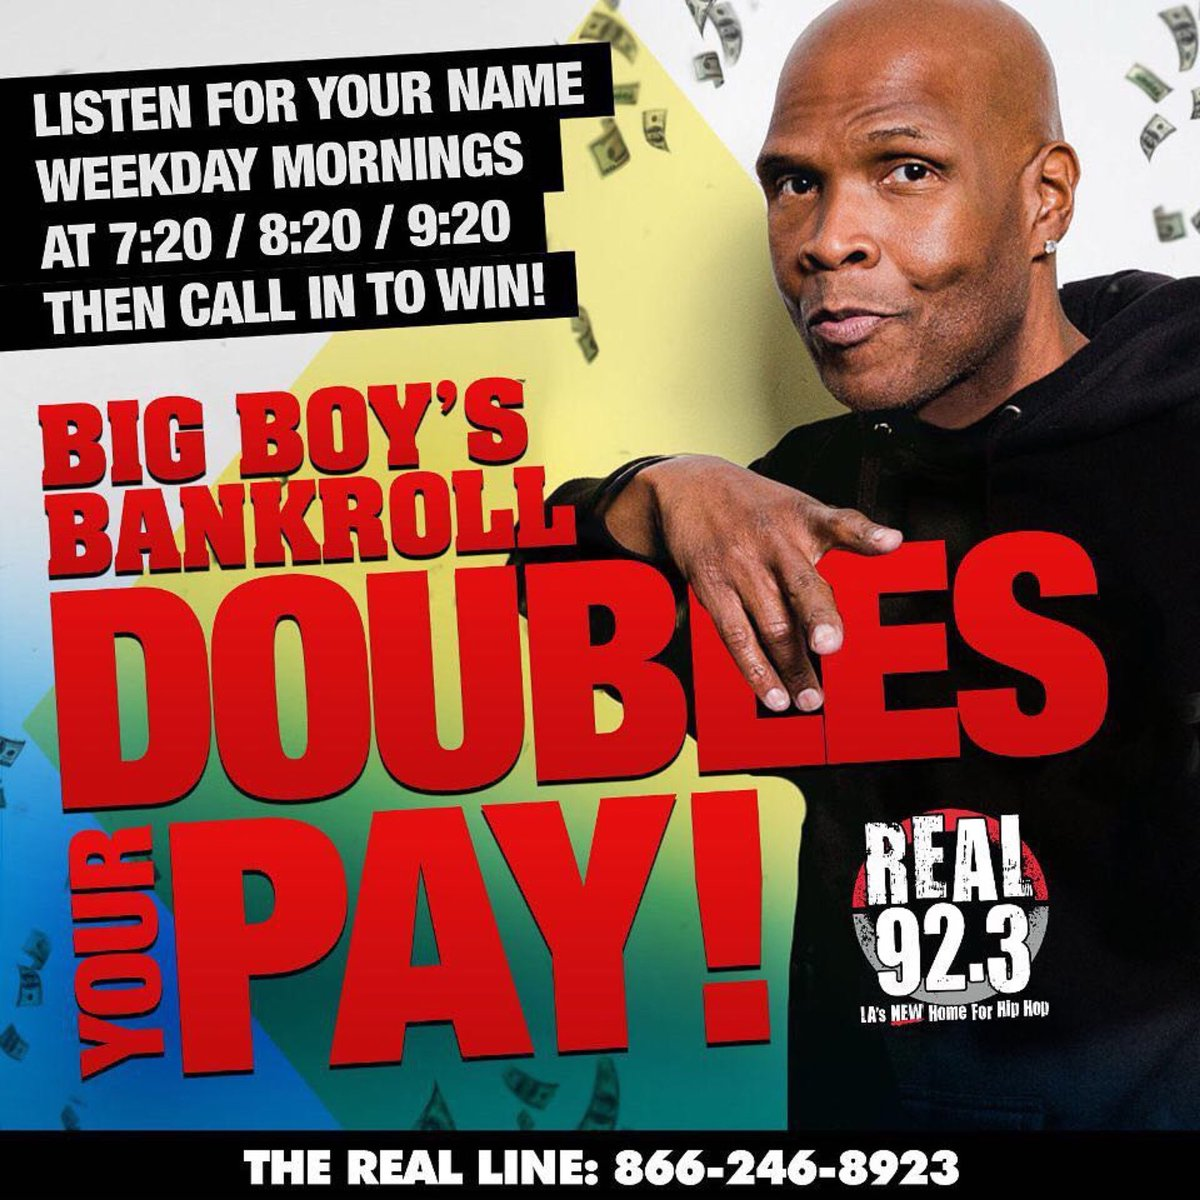 Did you hear that?! #BigBoy's Bankroll Doubles Your Pay 💰REAL923LA.com/Bankroll then listen to @BBNcrew starting 4/26 at 7:20a, 8:20a & 9:20a... if you hear your name call in to win!🤑🤑🤑